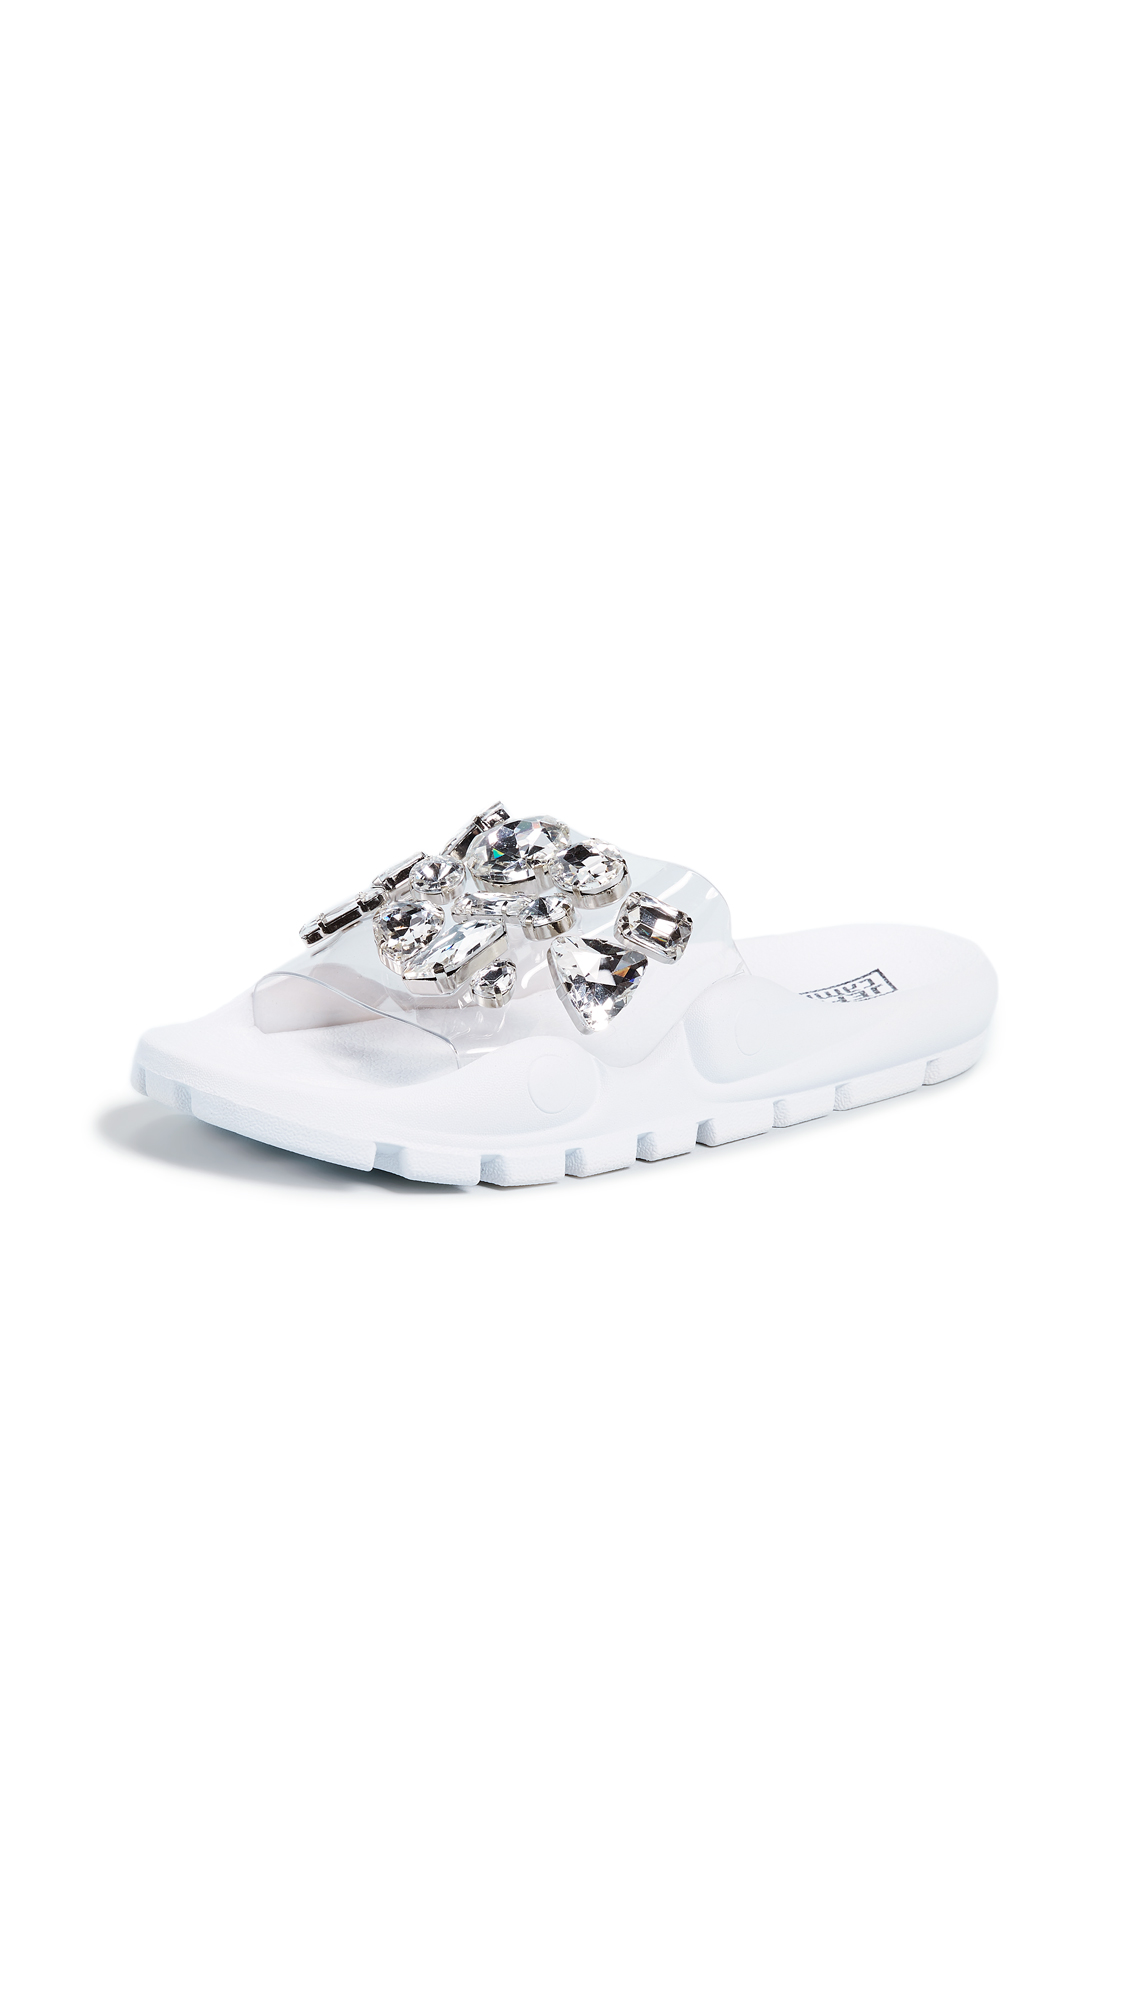 Jeffrey Campbell Aspic PVC Slides - Clear/White